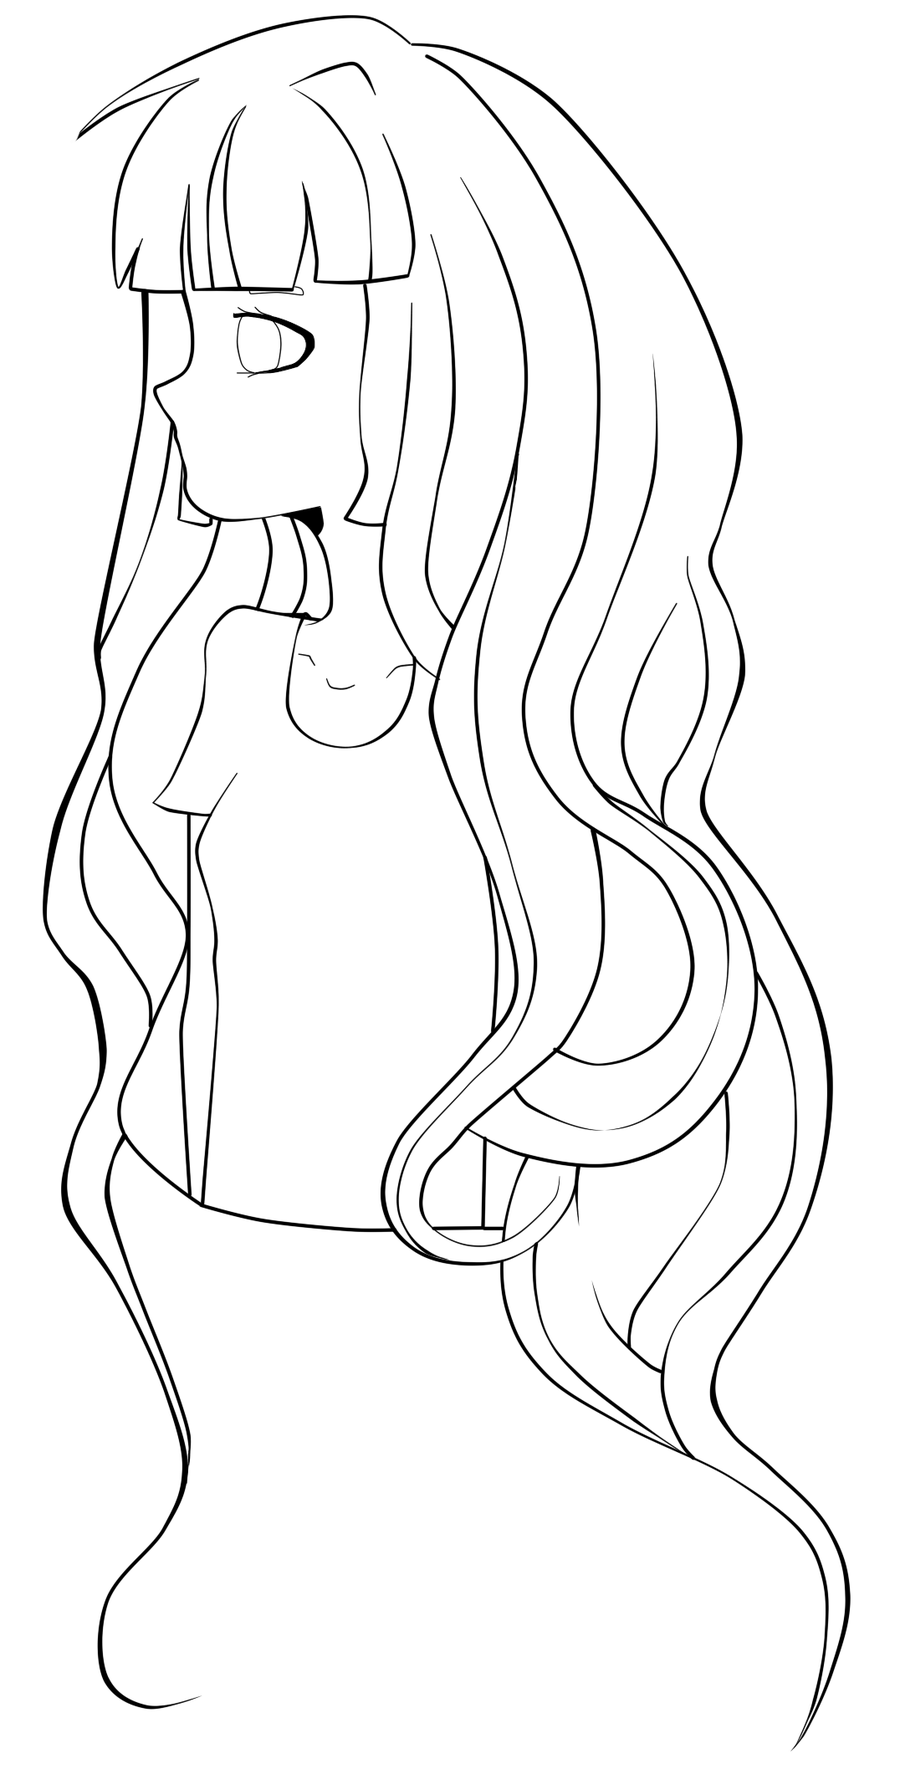 Katy Perry Roar Coloring Pages More Information Katy Perry Coloring Pages